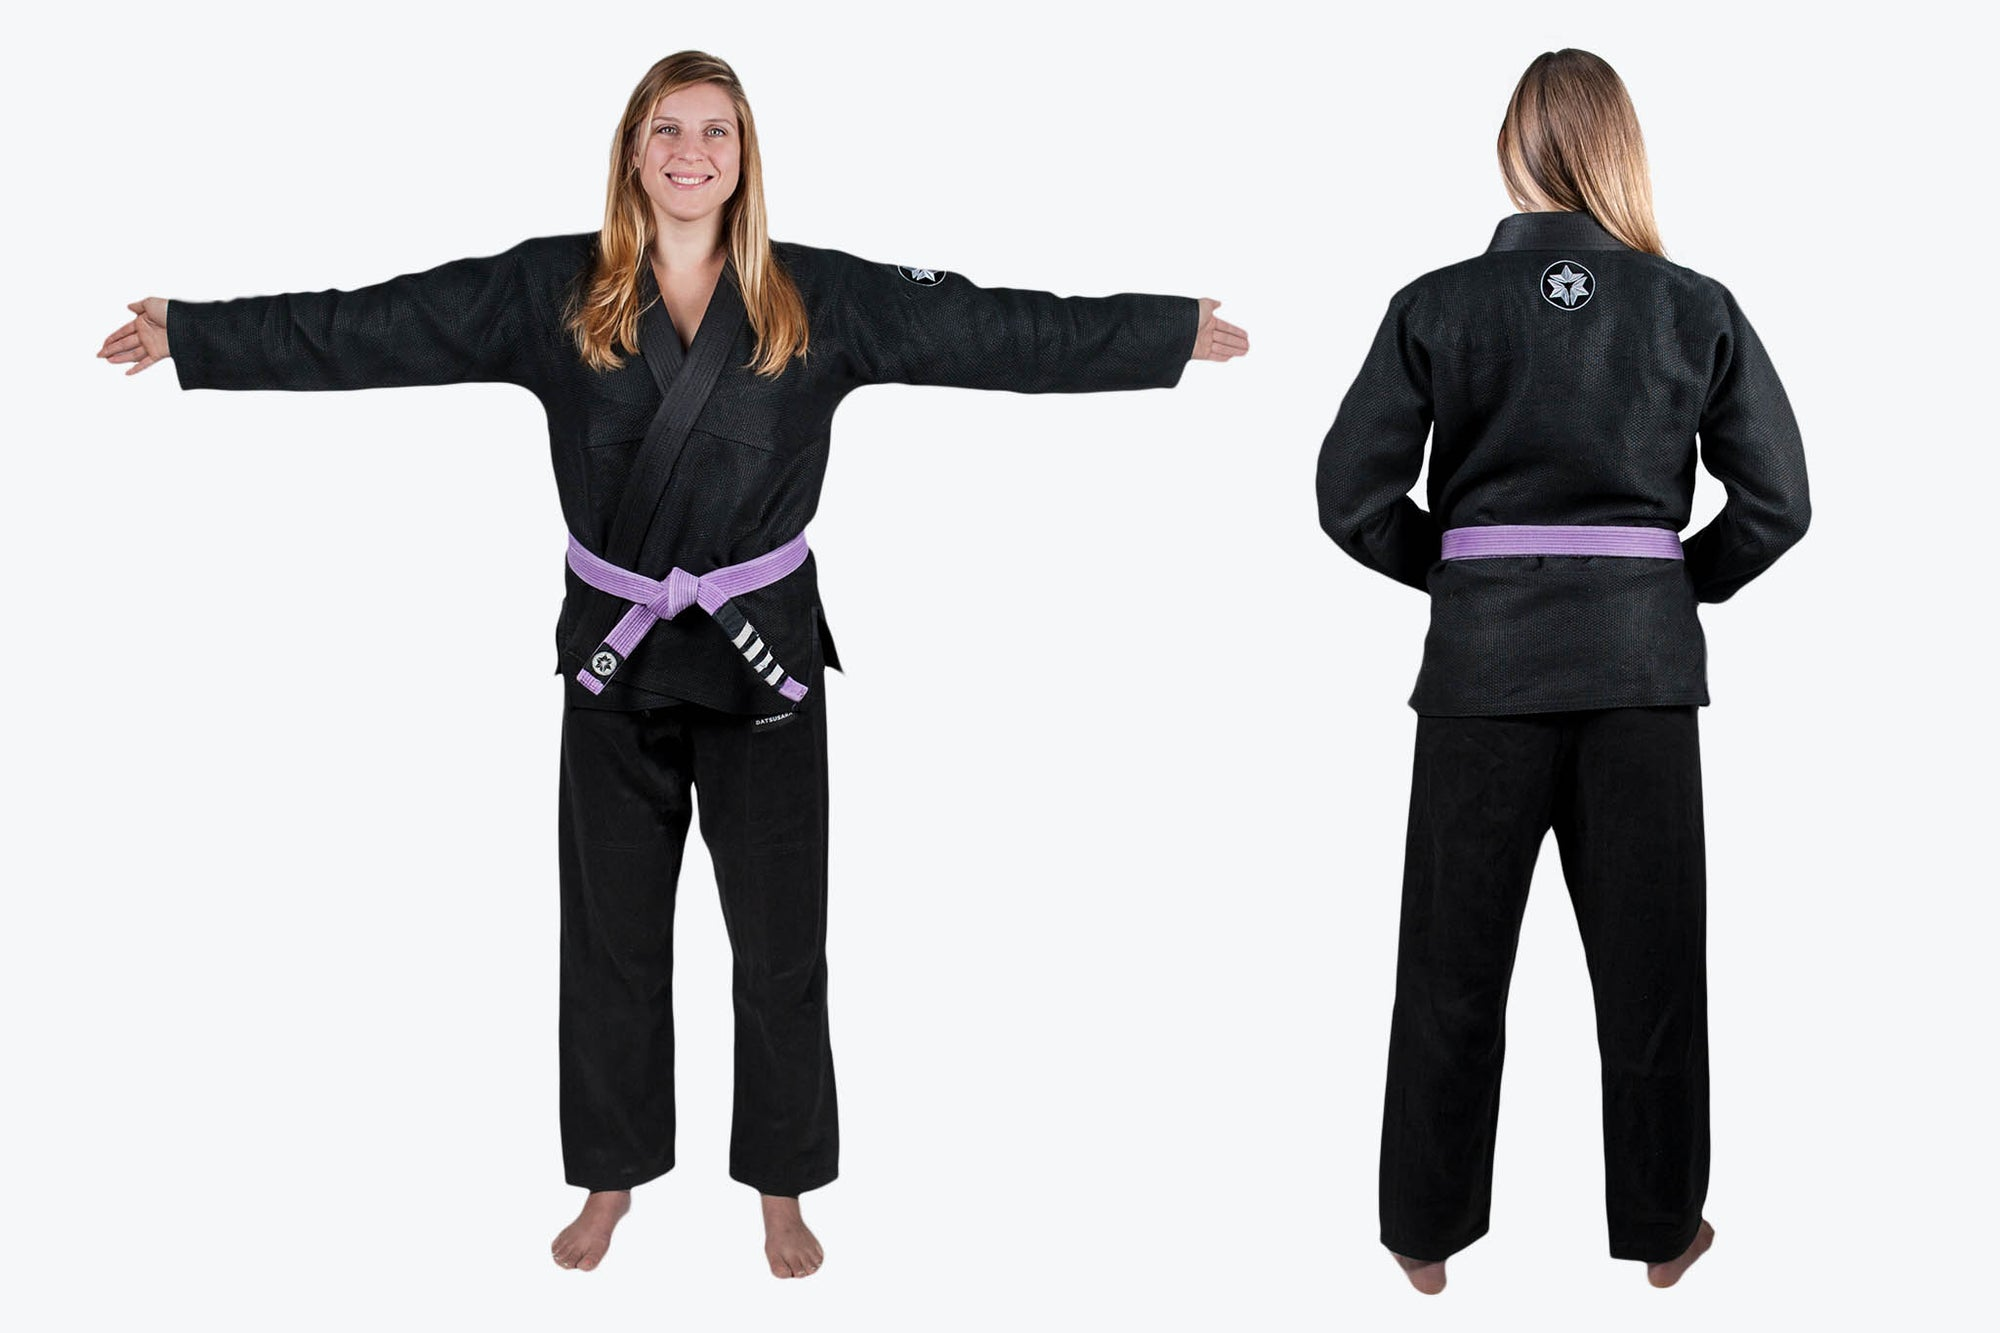 Women's Martial Arts Apparel